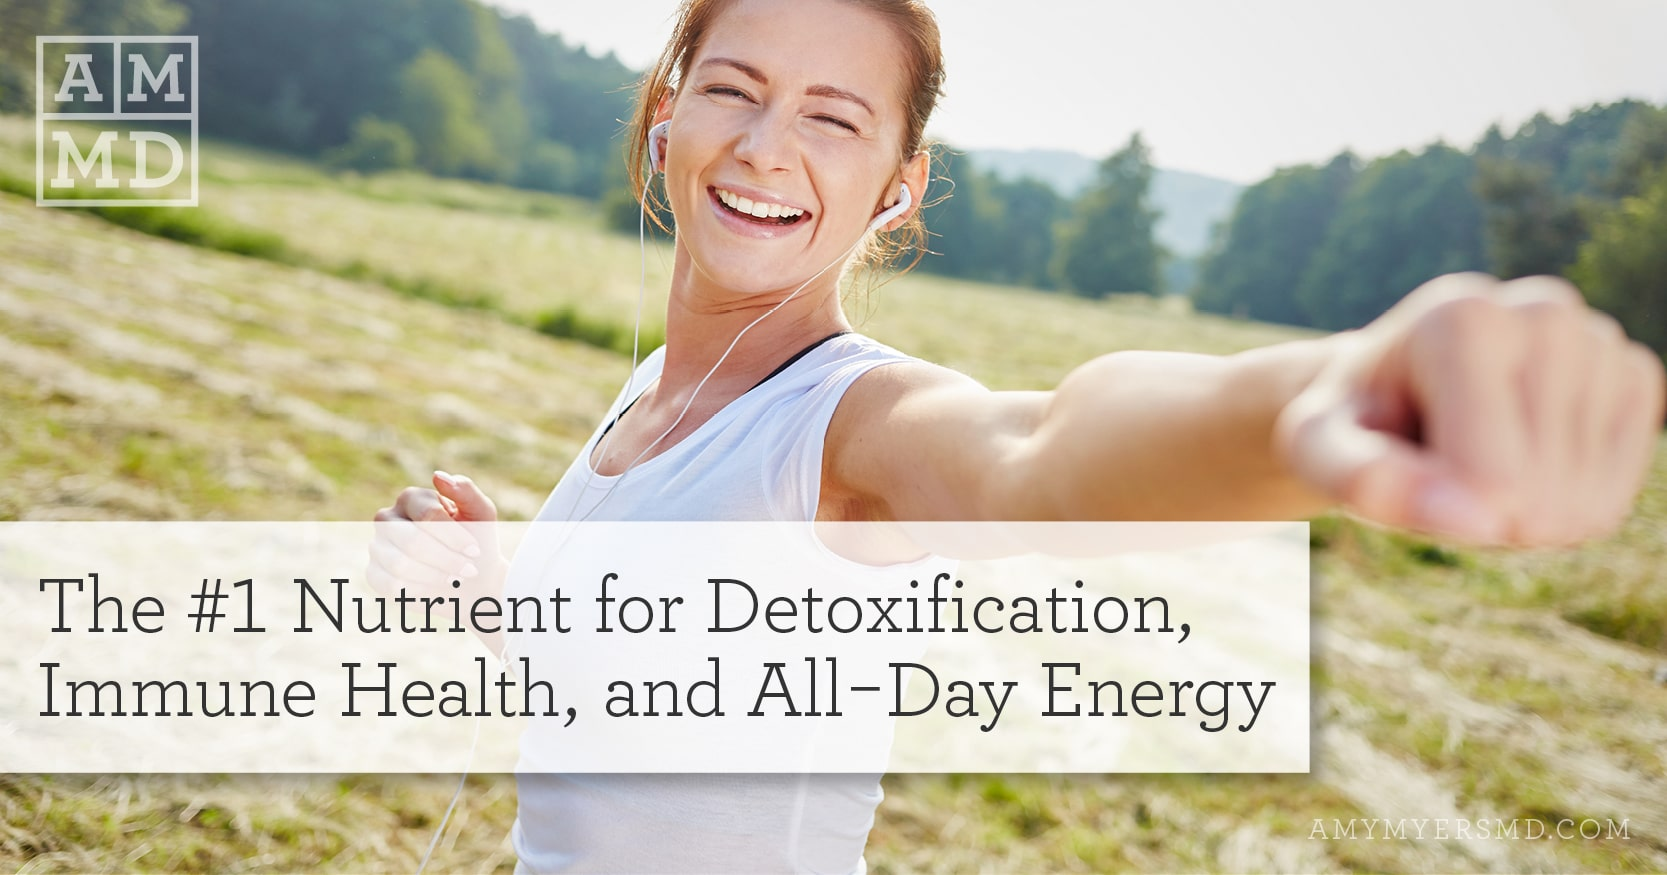 Glutathione, The Nutrient for Detoxification, Immune Health, and All-Day Energy - A Woman Exercising Outside - Featured Image - Amy Myers MD